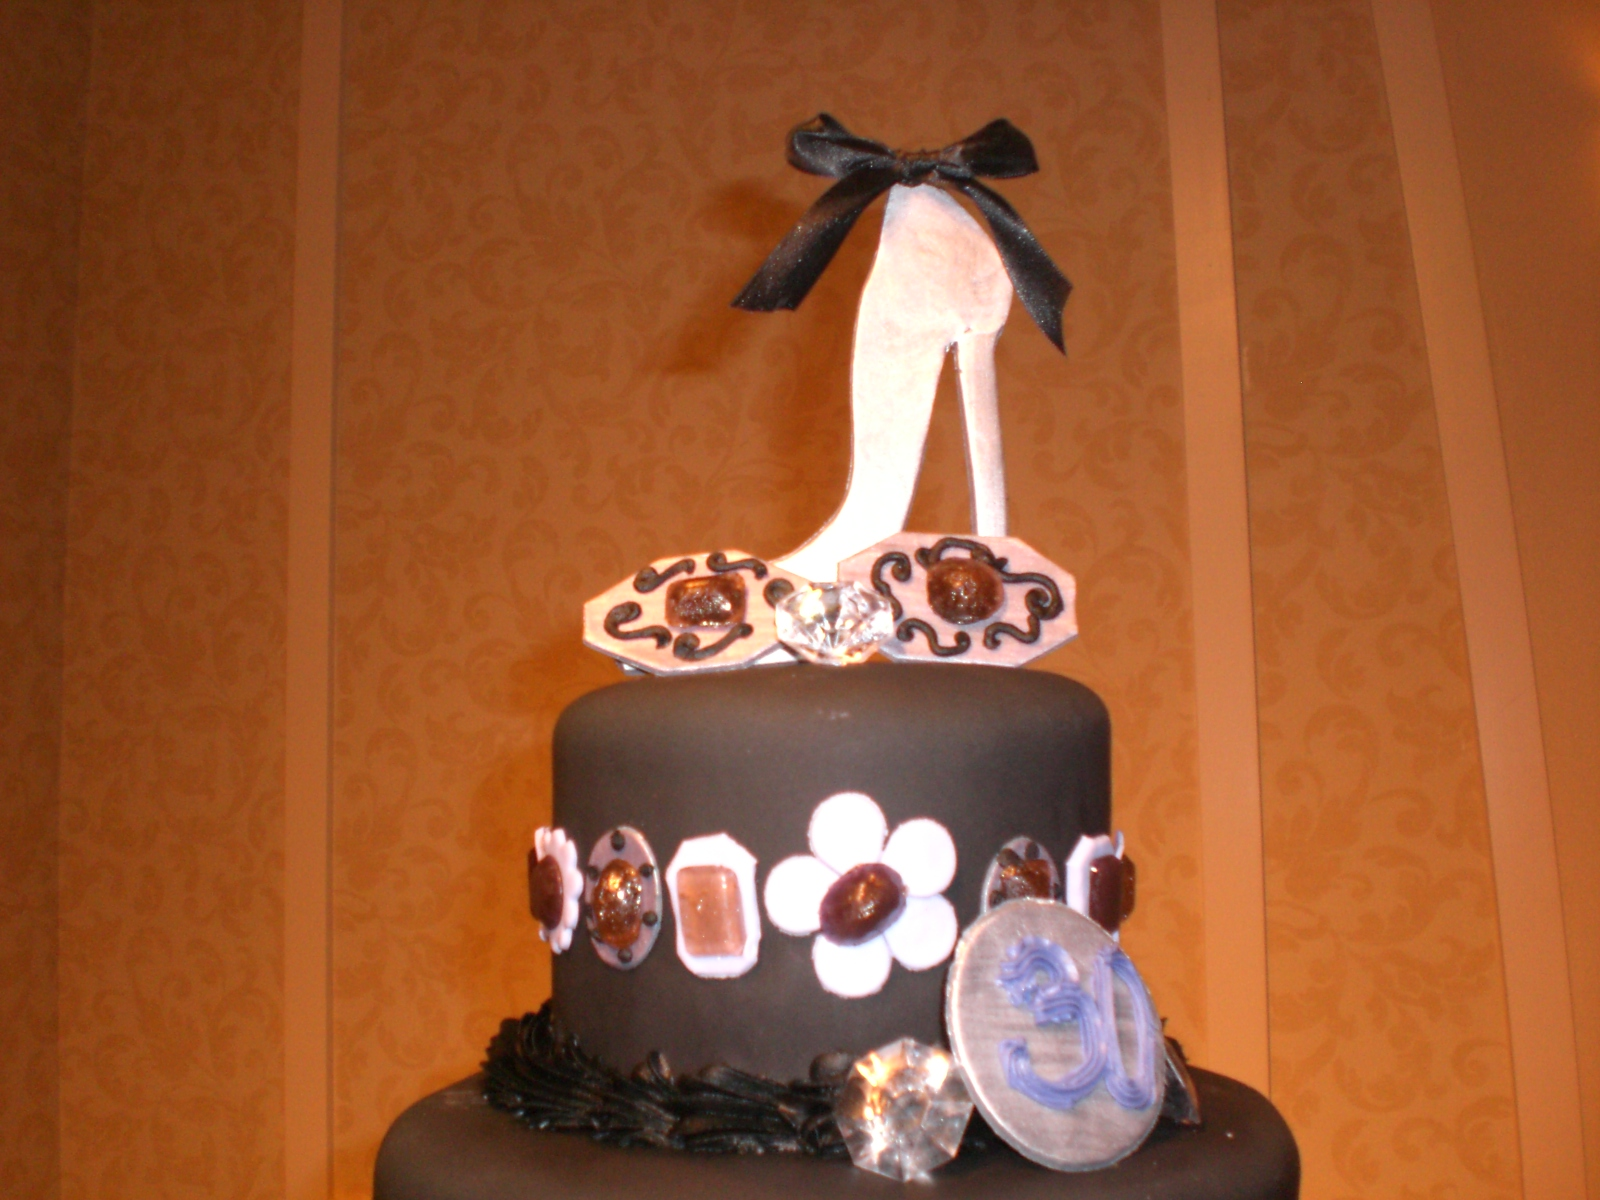 Cake Art Lawrenceville Hwy : CAFE AROMAS: Heels and Cuff Links Cake